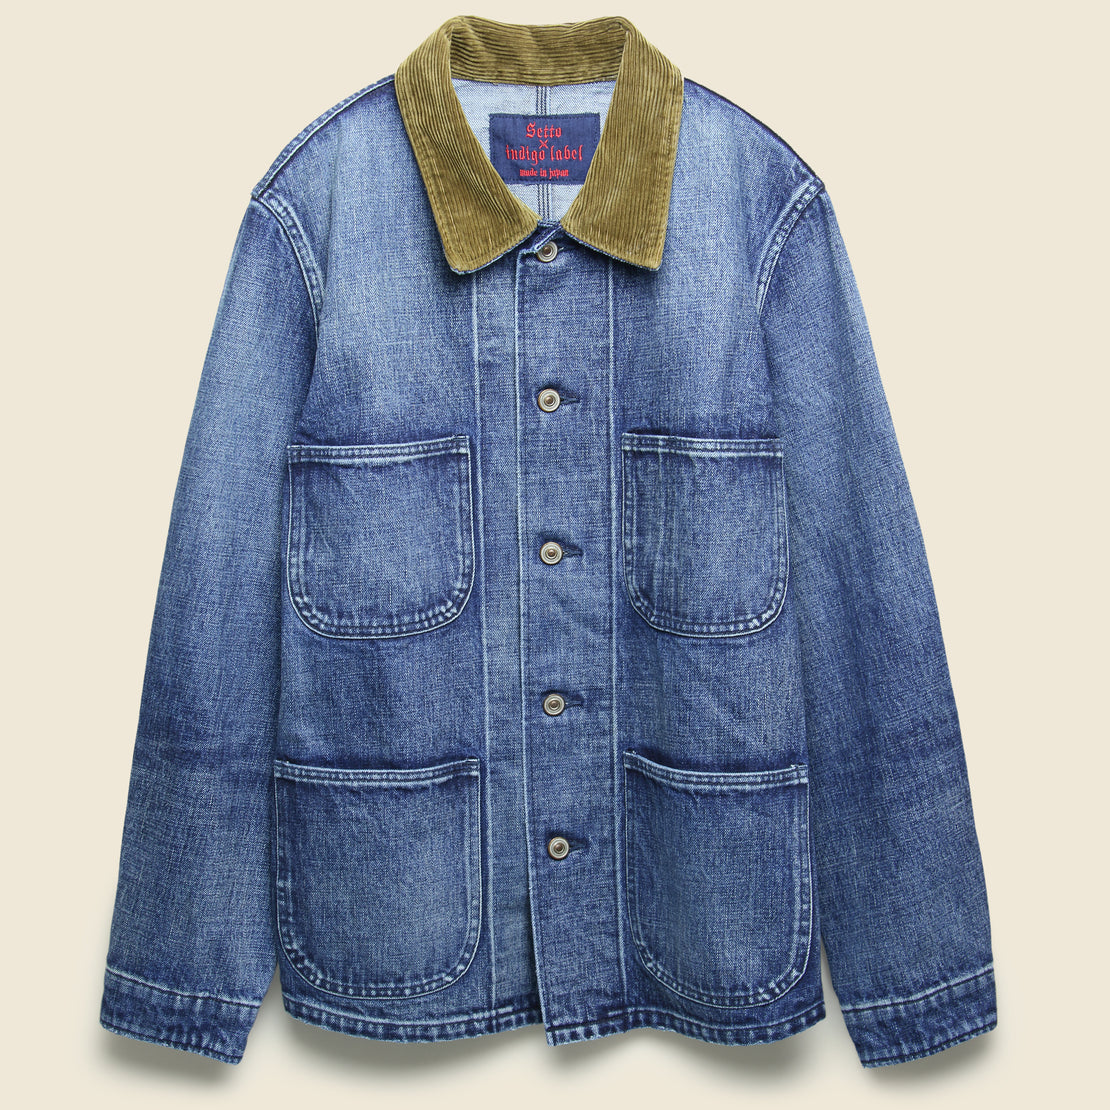 Setto Denim Coverall Jacket - Light Indigo